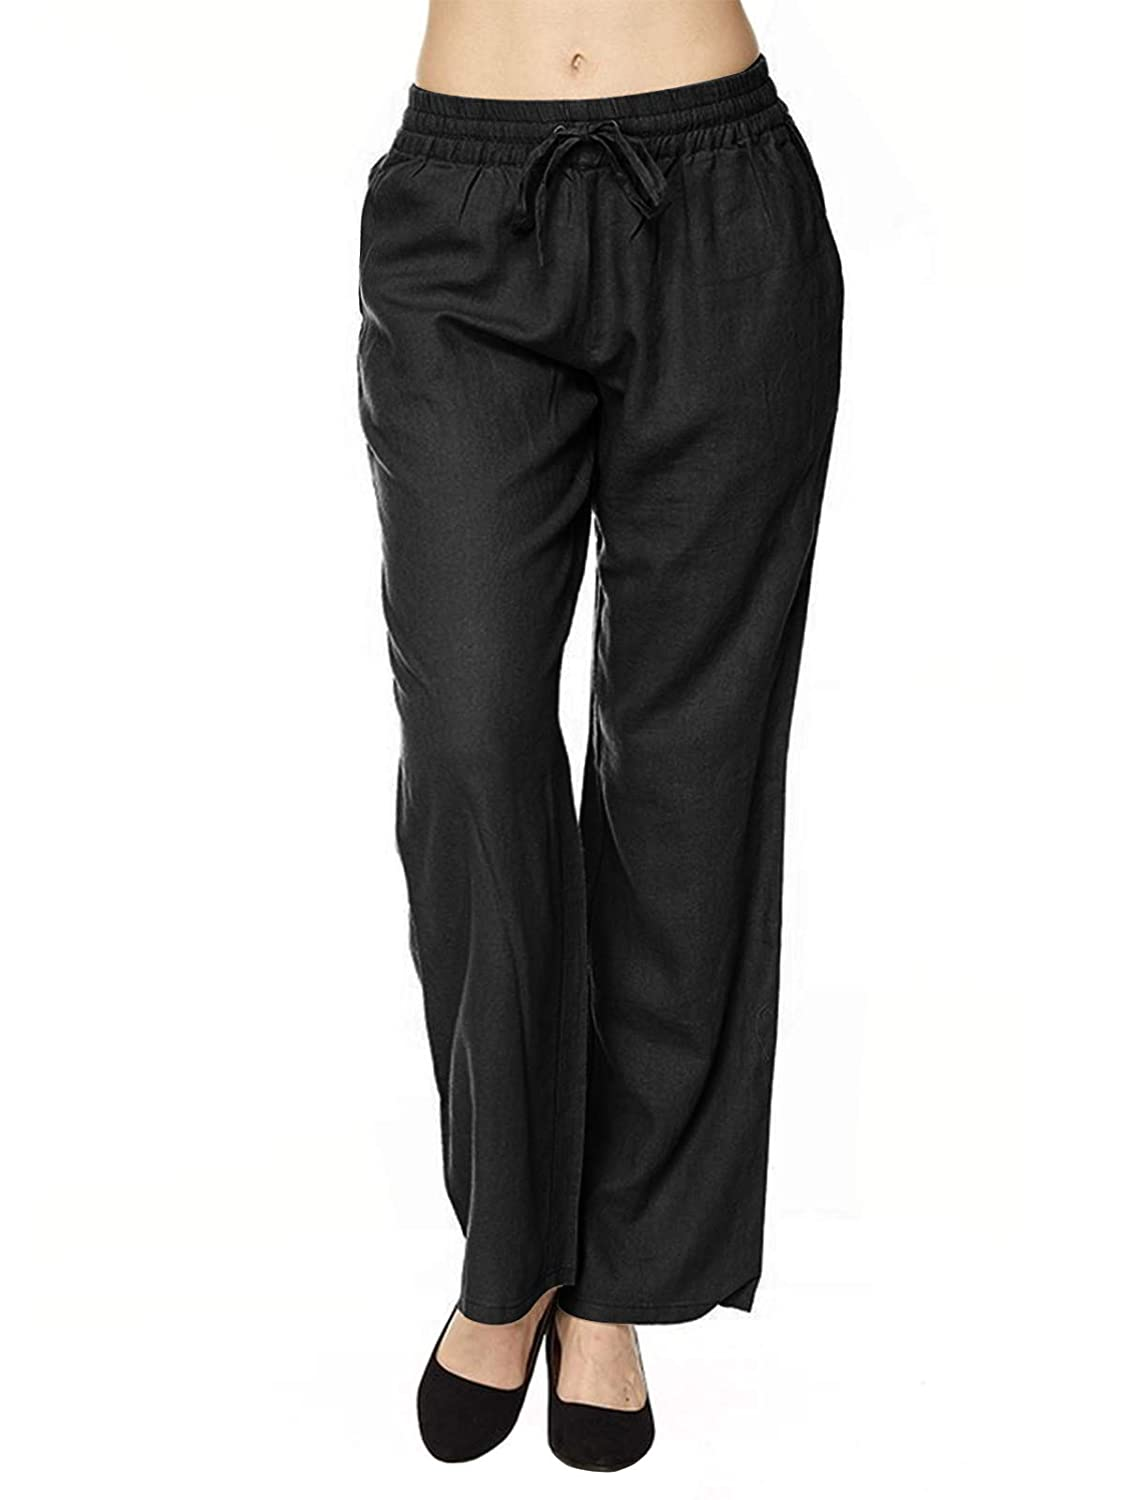 Ipaw002 Black Instar Mode Women's Comfy Drawstring Linen Pants with Pocket (S3XL)